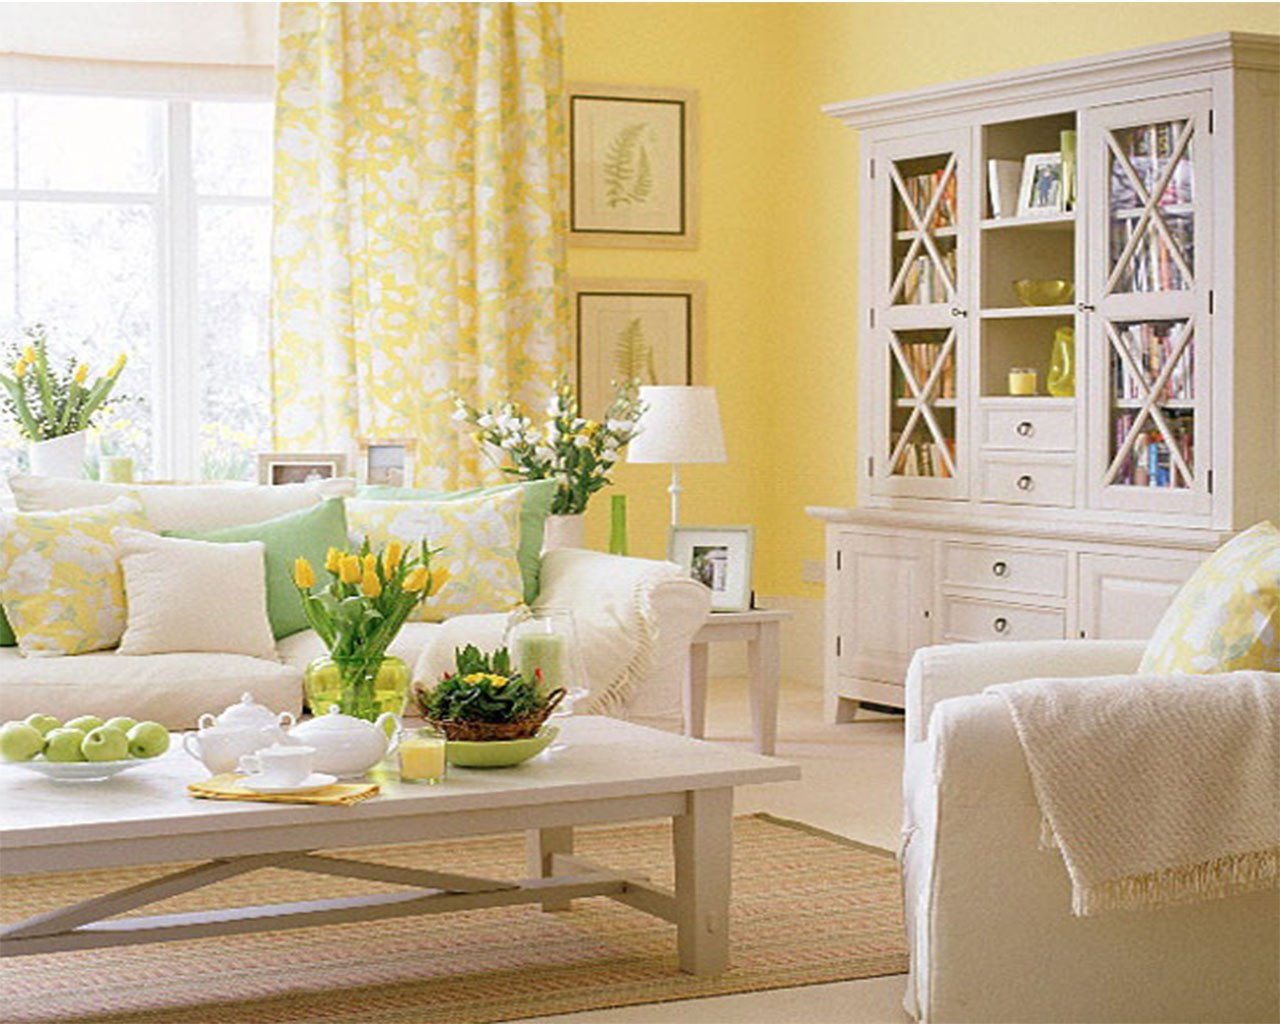 Yellow Decor for Living Room Unique Dining Room Light Ideas Decorate Long Hallway Ideas